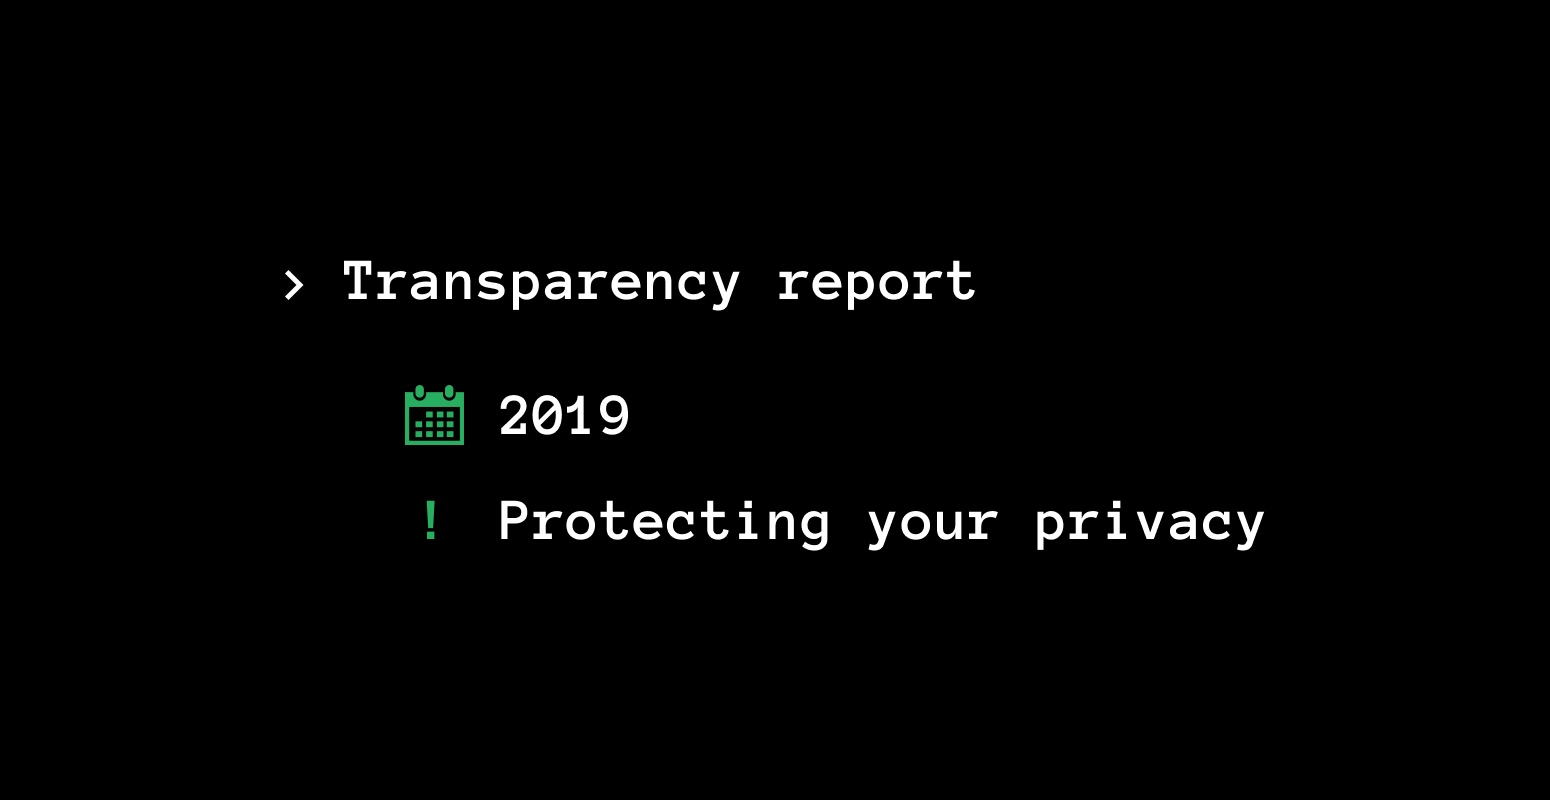 Transparency report for 2019